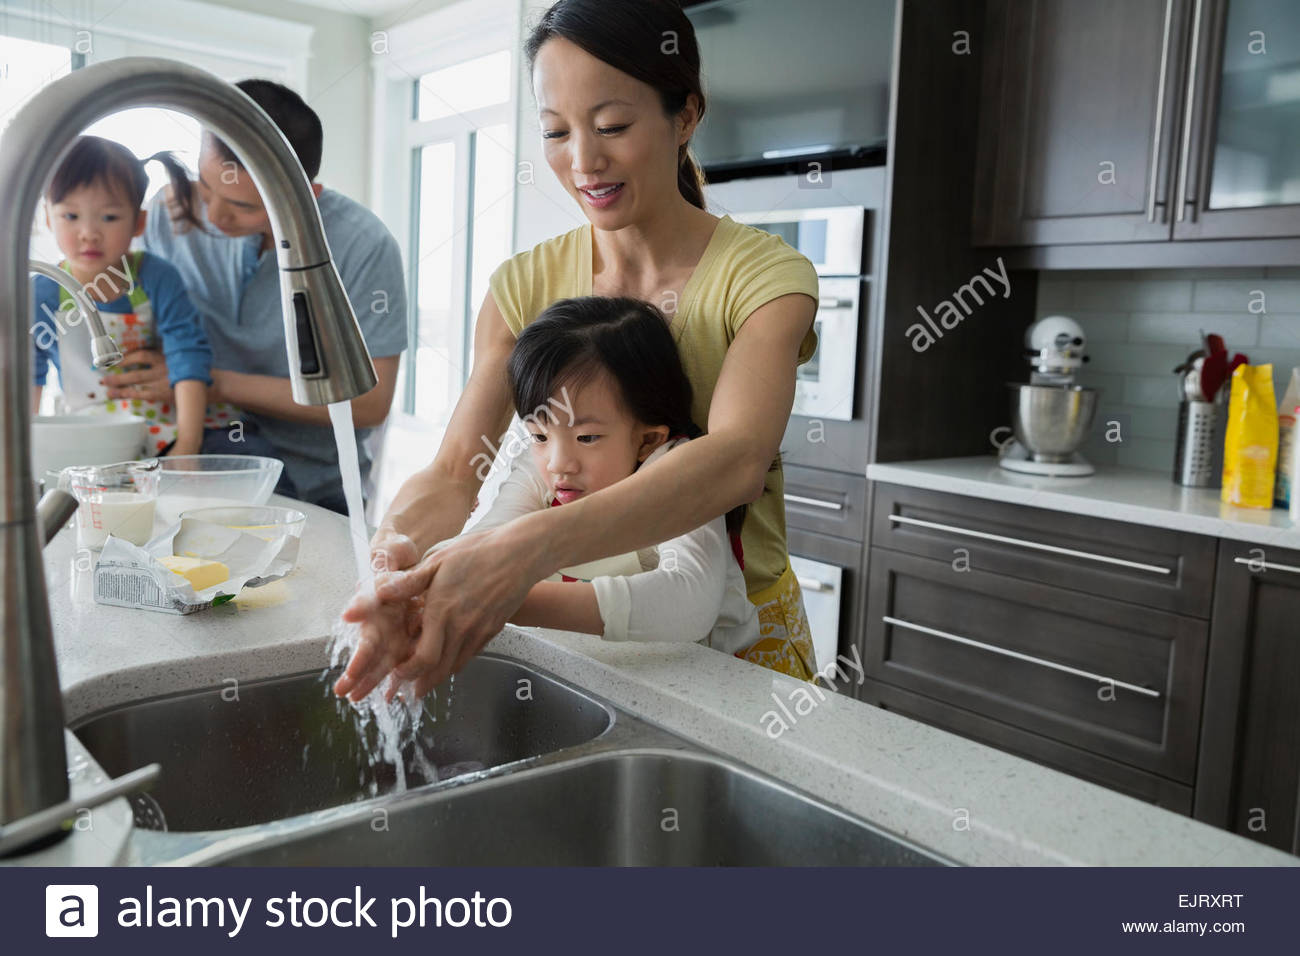 Mother and daughter washing hands in kitchen sink - Stock Image